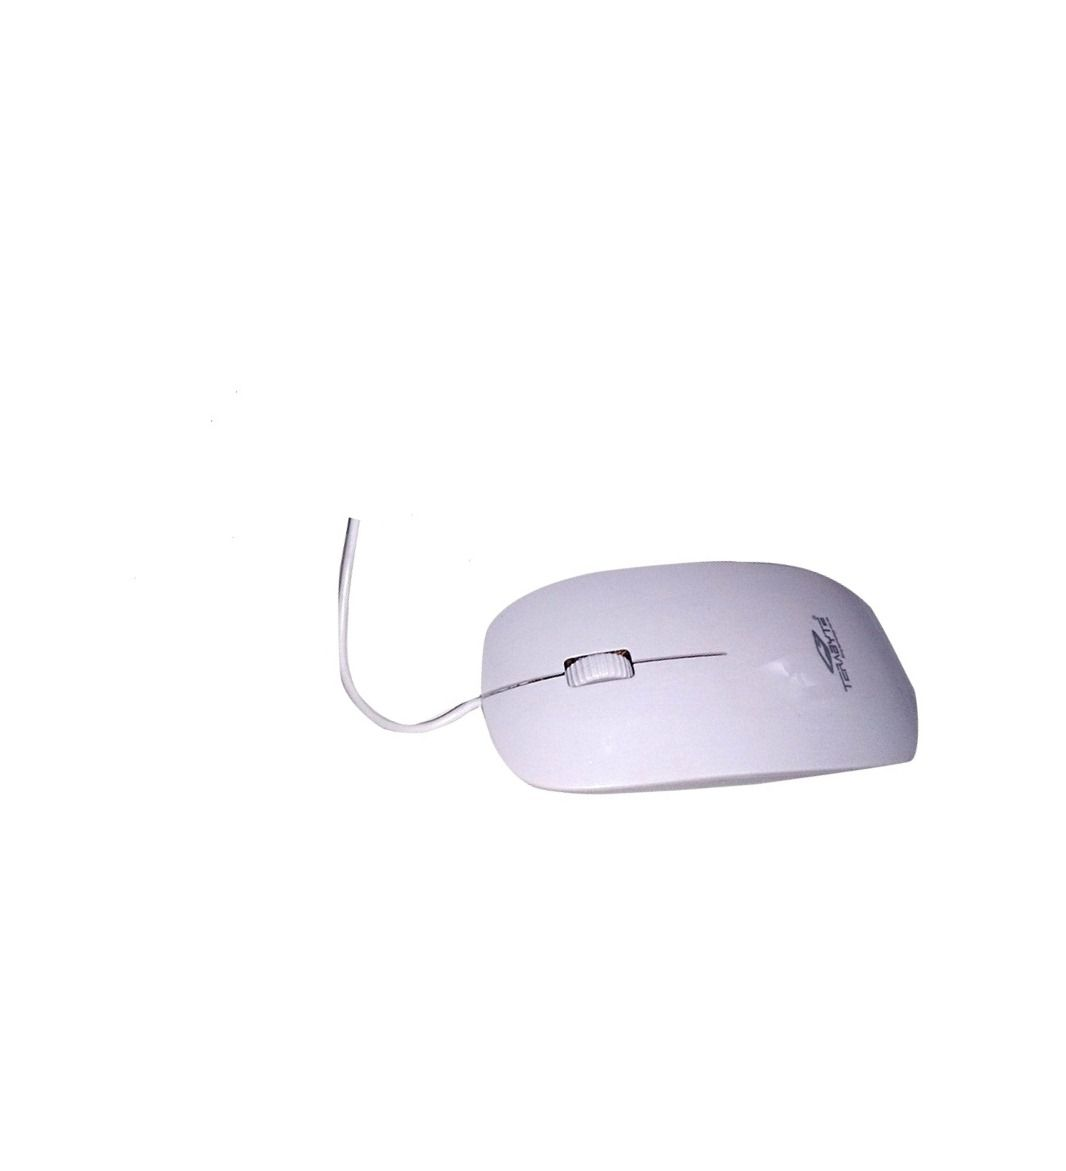 Terabyte Usb Mouse White